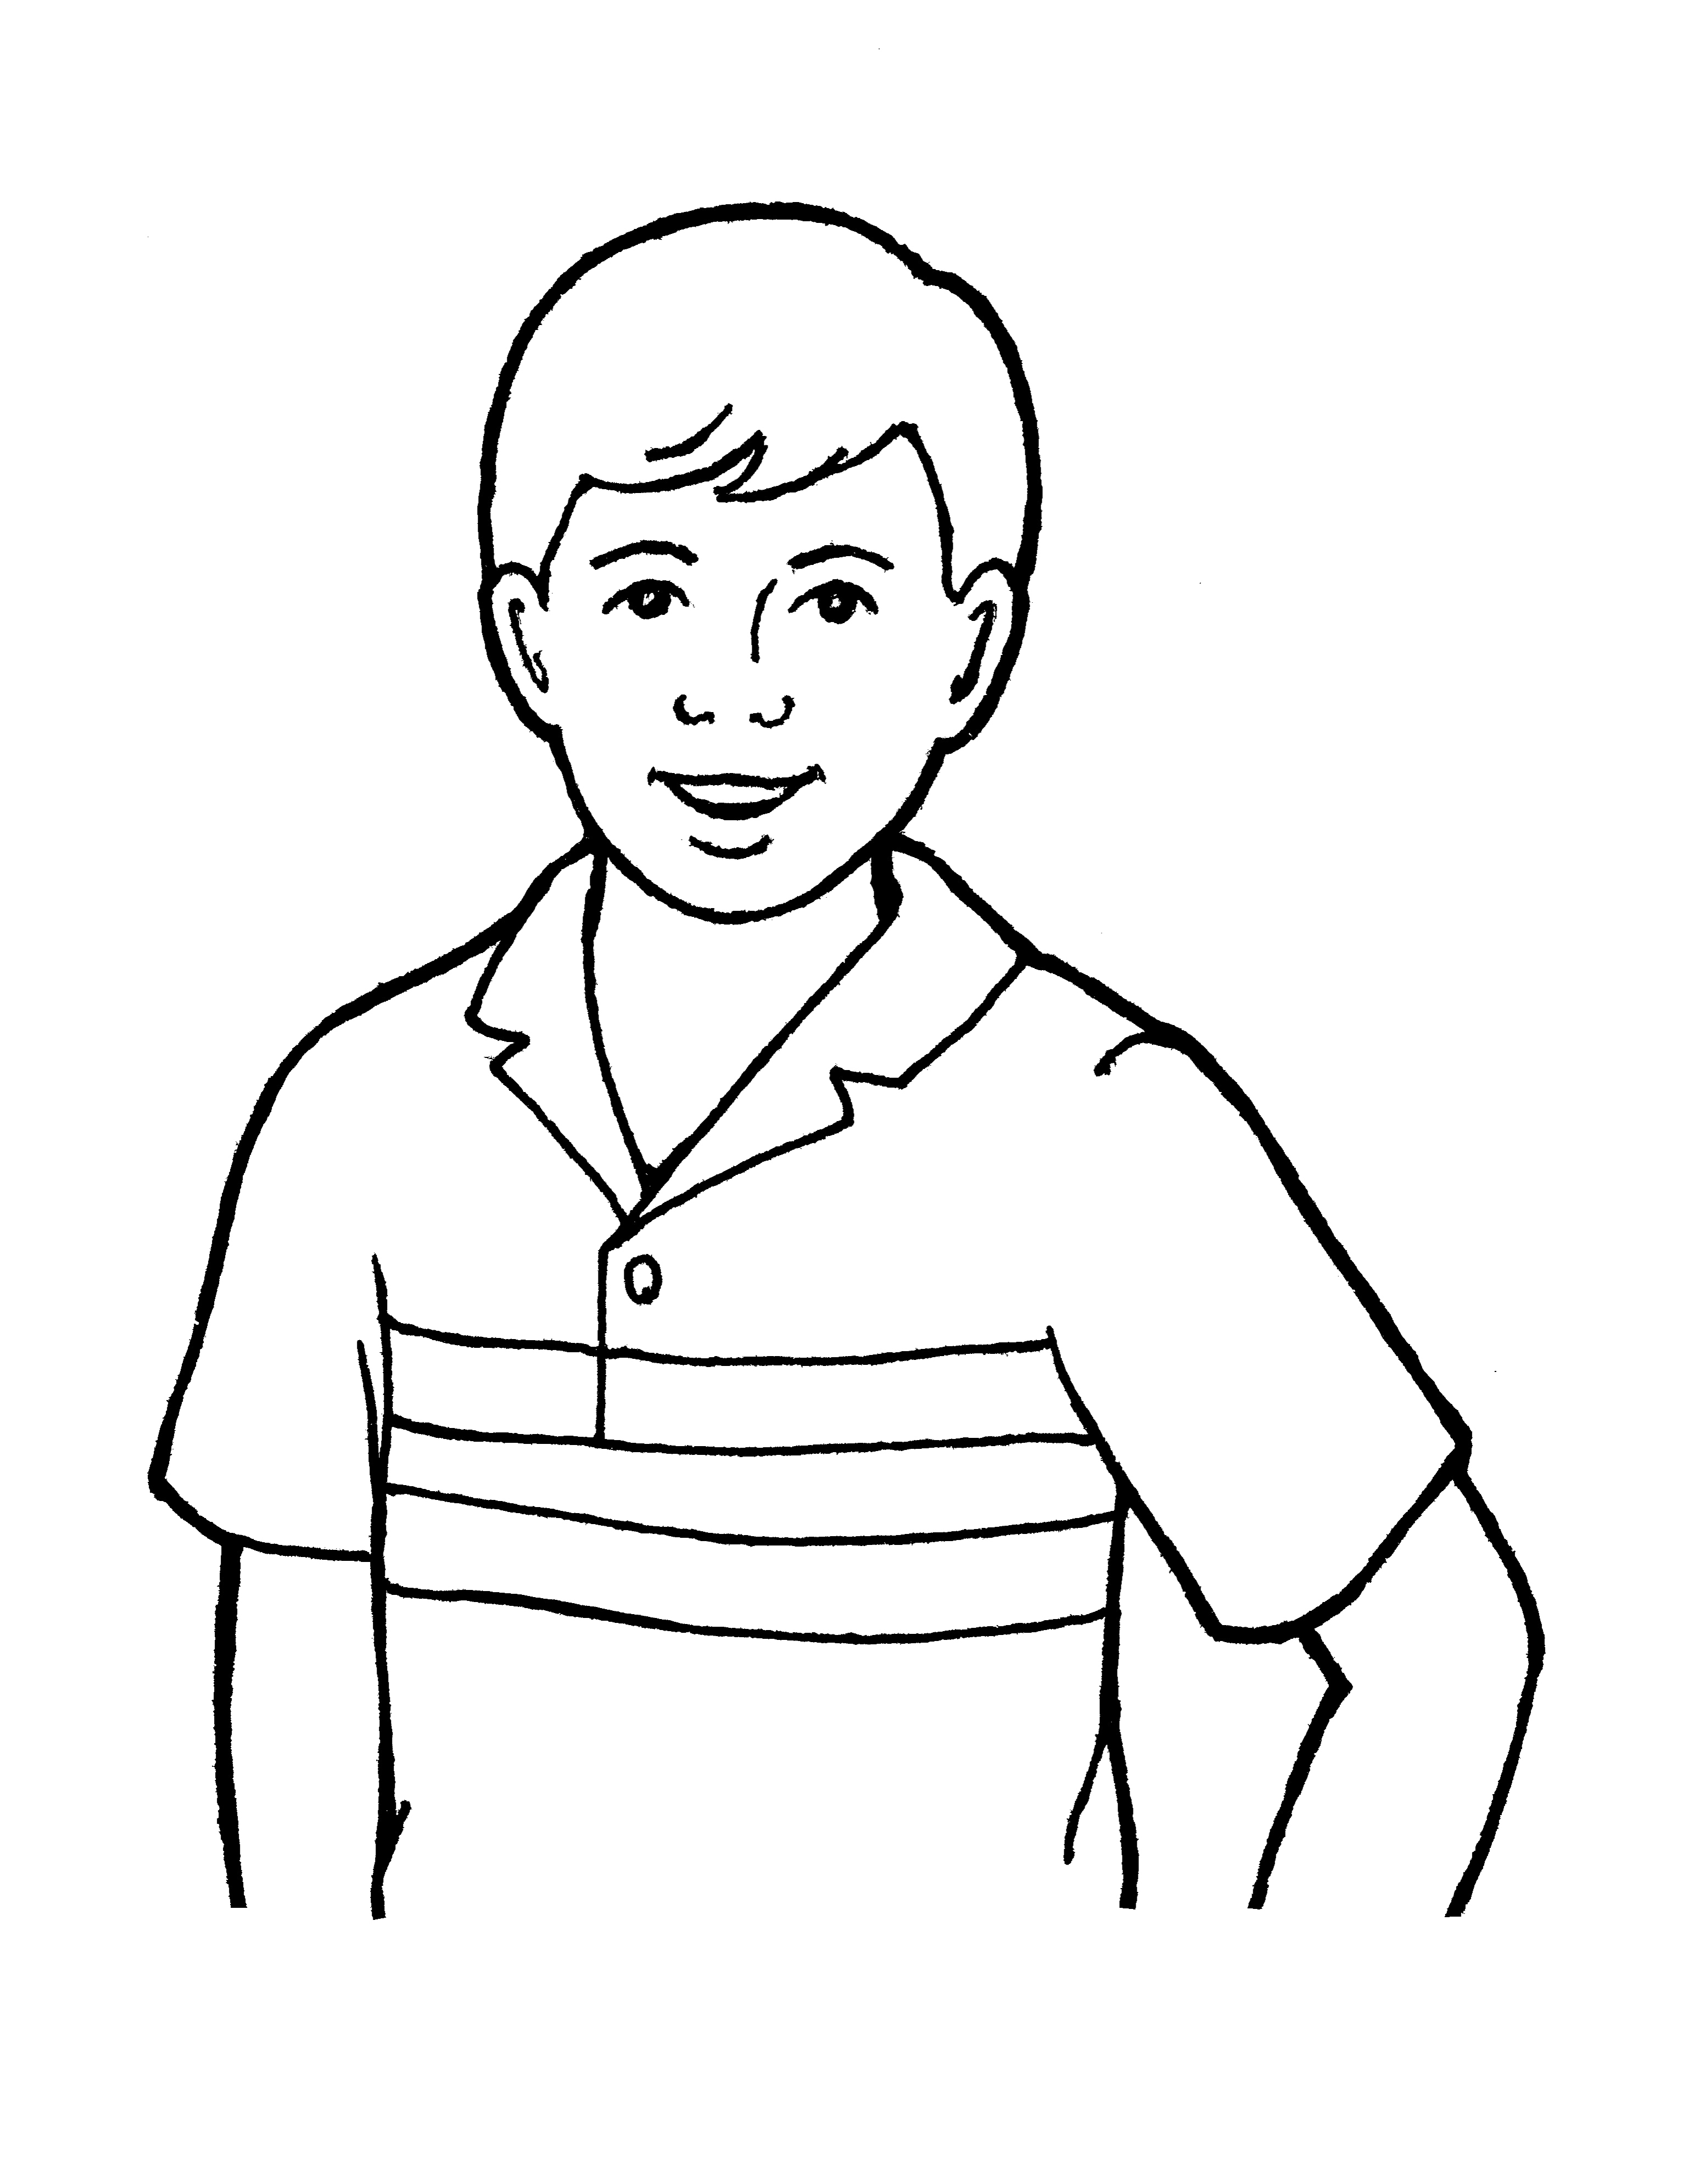 An illustration of a boy or brother, from the nursery manual Behold Your Little Ones (2008), page 59.